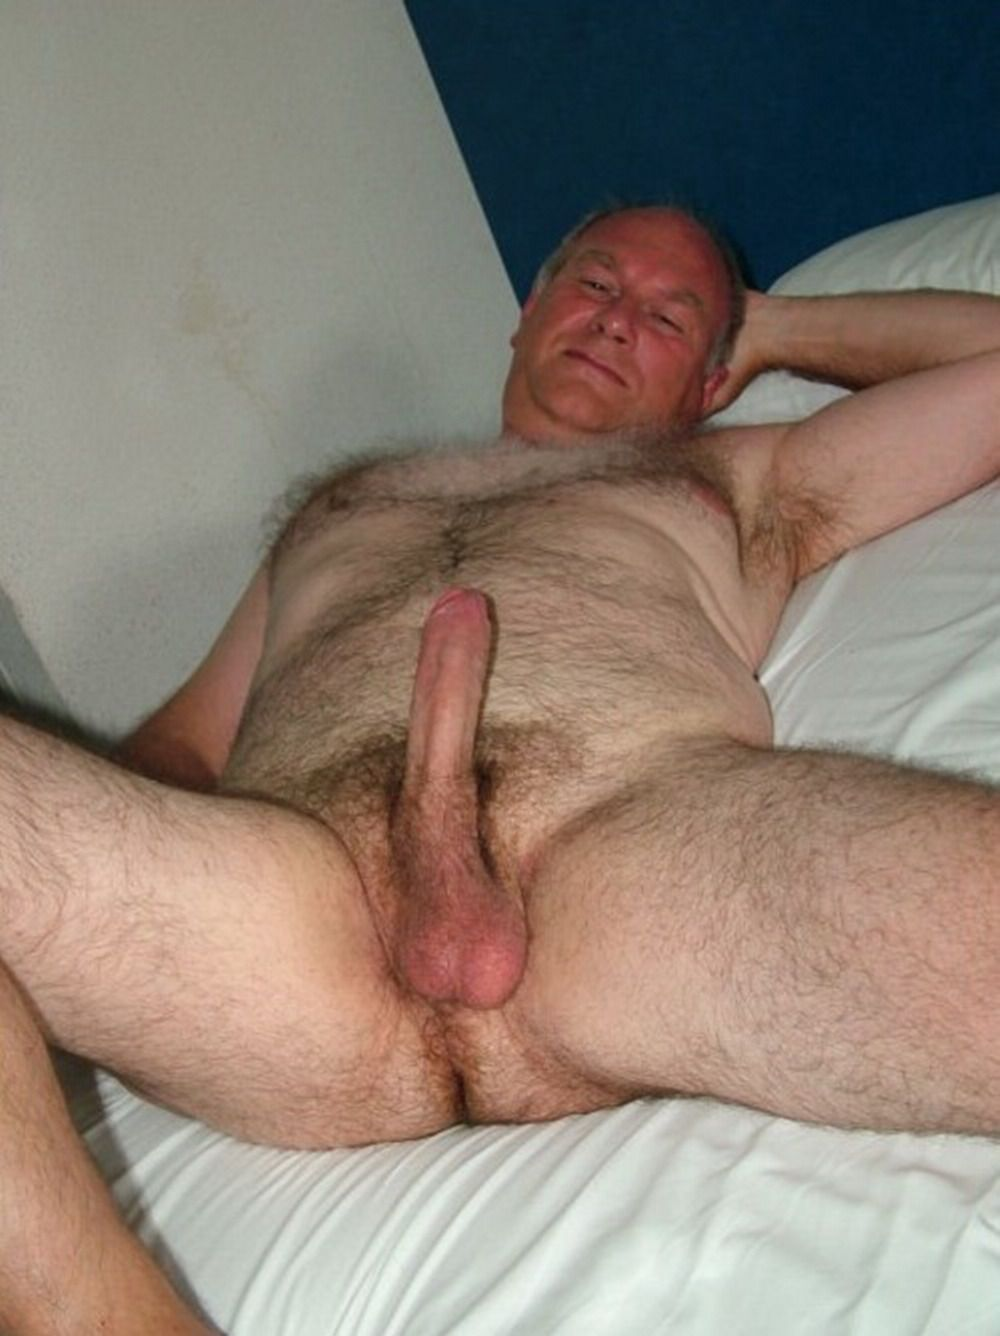 Mature gay cock photos